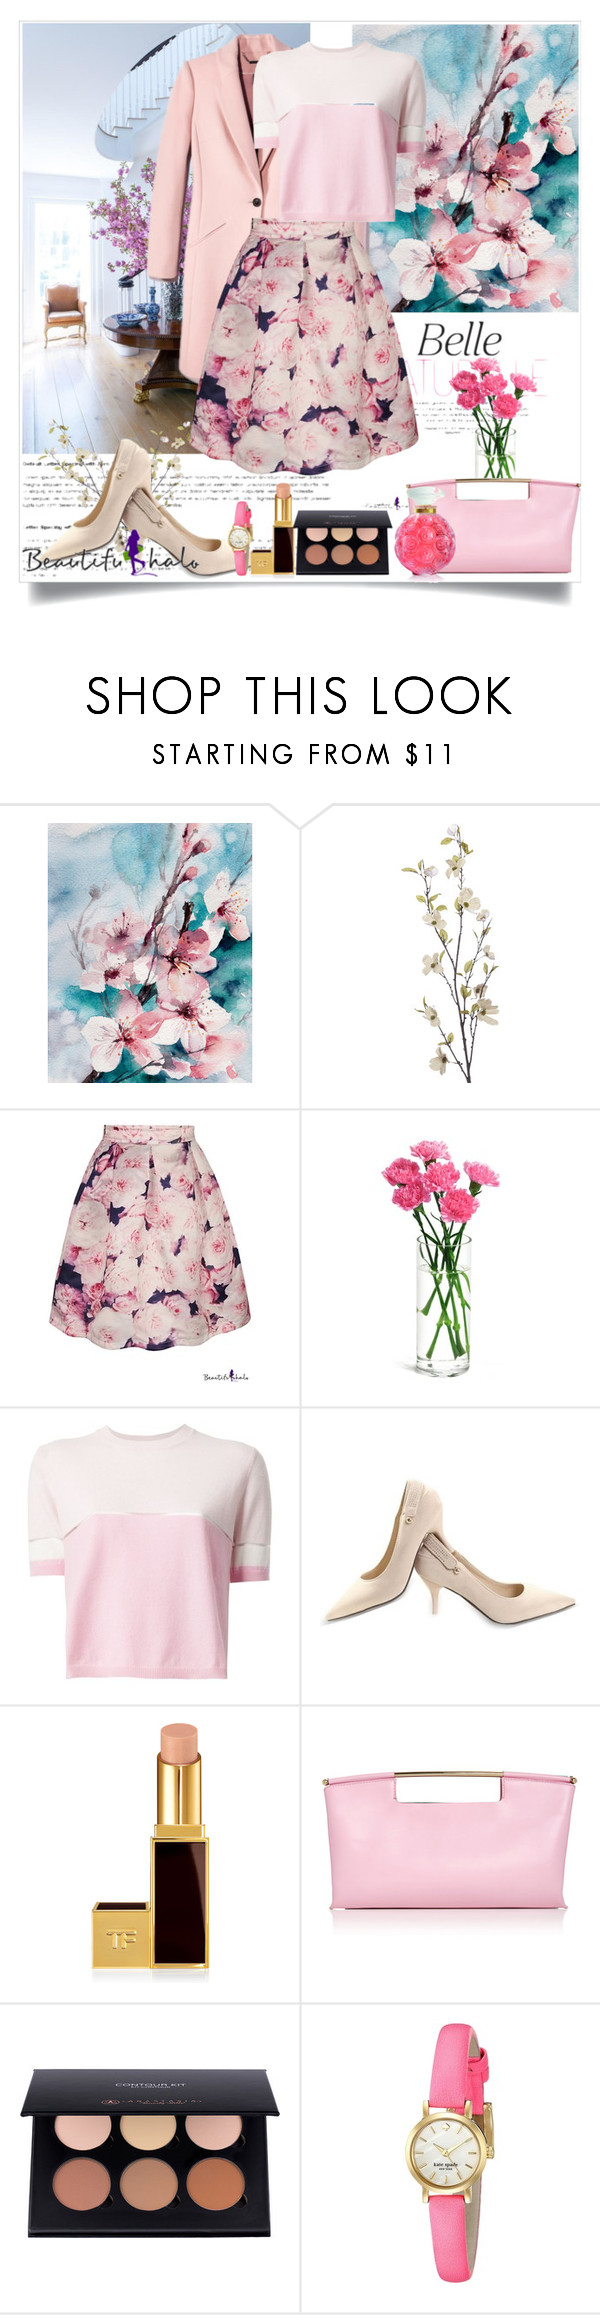 """""""beautifulhalo"""" by misaflowers ❤ liked on Polyvore featuring Baccarat, Pier 1 Imports, Fendi, Tom Ford, Delpozo, Kate Spade and Lalique"""